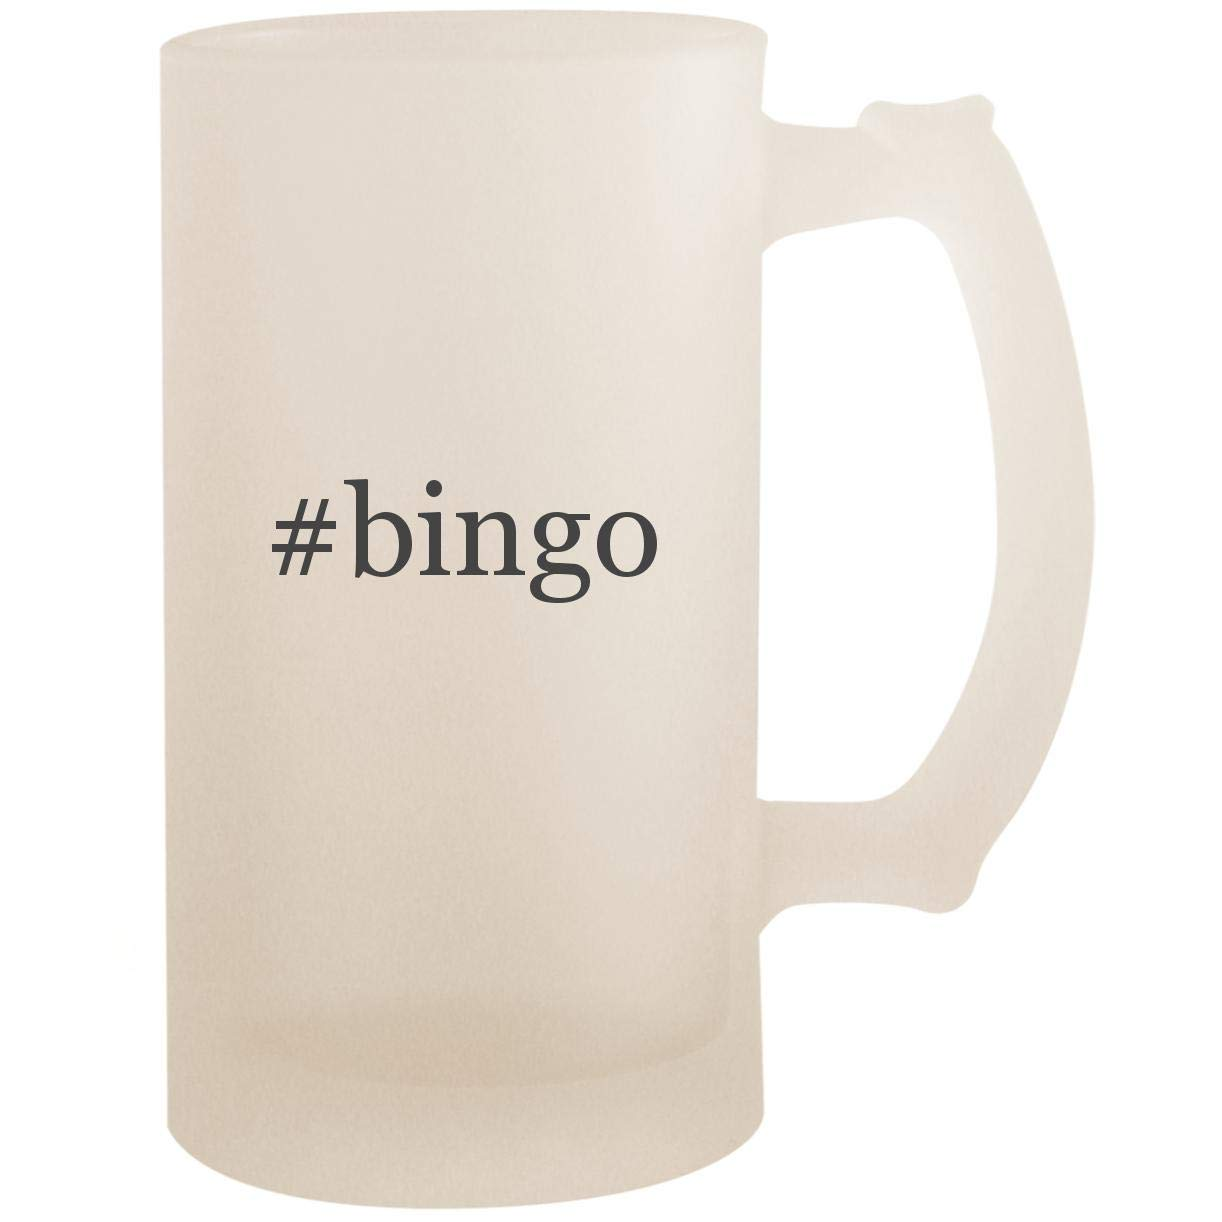 #bingo - 16oz Glass Frosted Beer Stein Mug, Frosted by Molandra Products